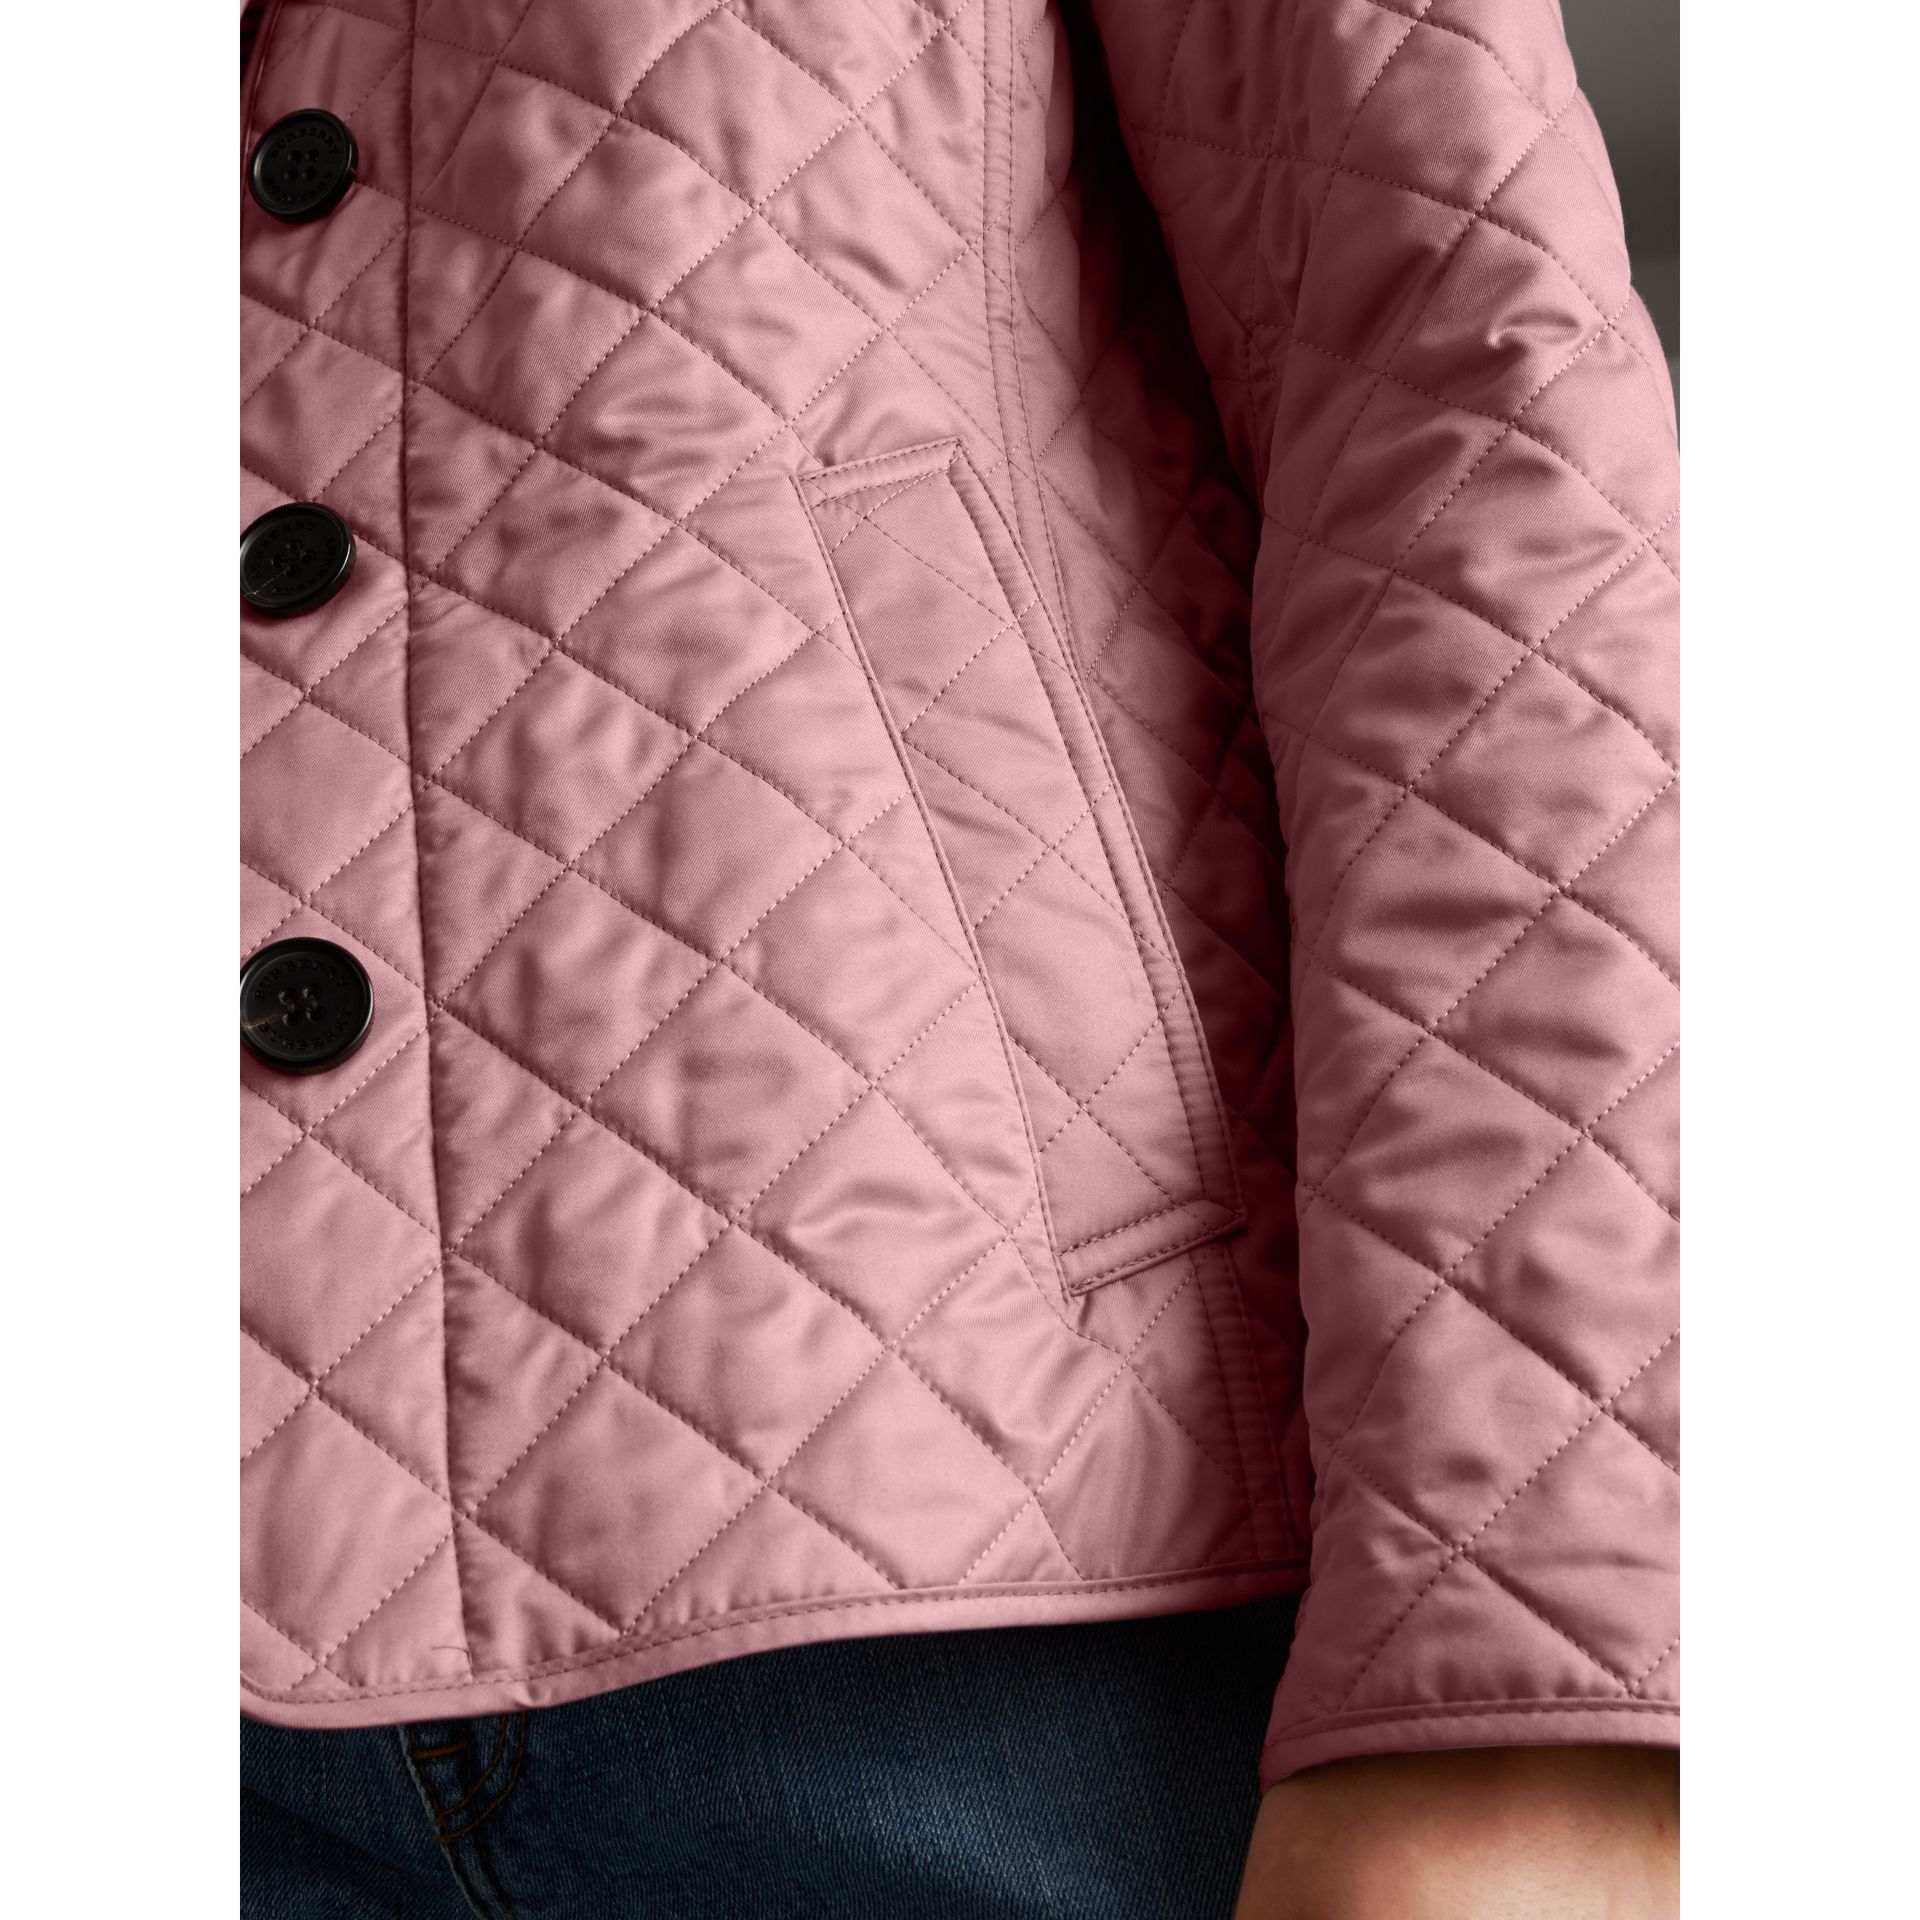 Diamond Quilted Jacket in Vintage Rose - Women | Burberry - gallery image 4